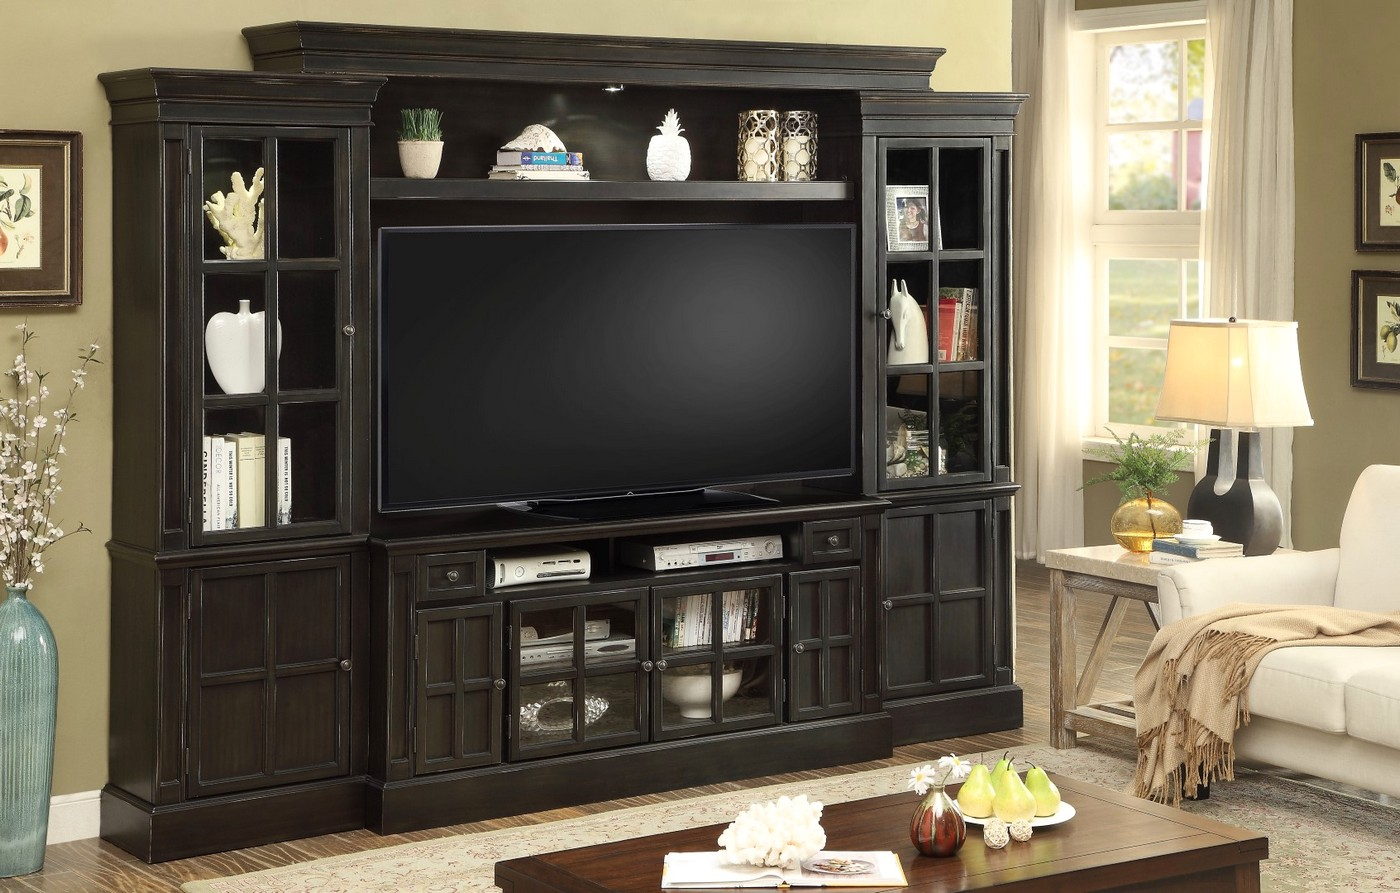 Concord Traditional 62 Entertainment Wall Unit In Vintage Distressed Black Coal